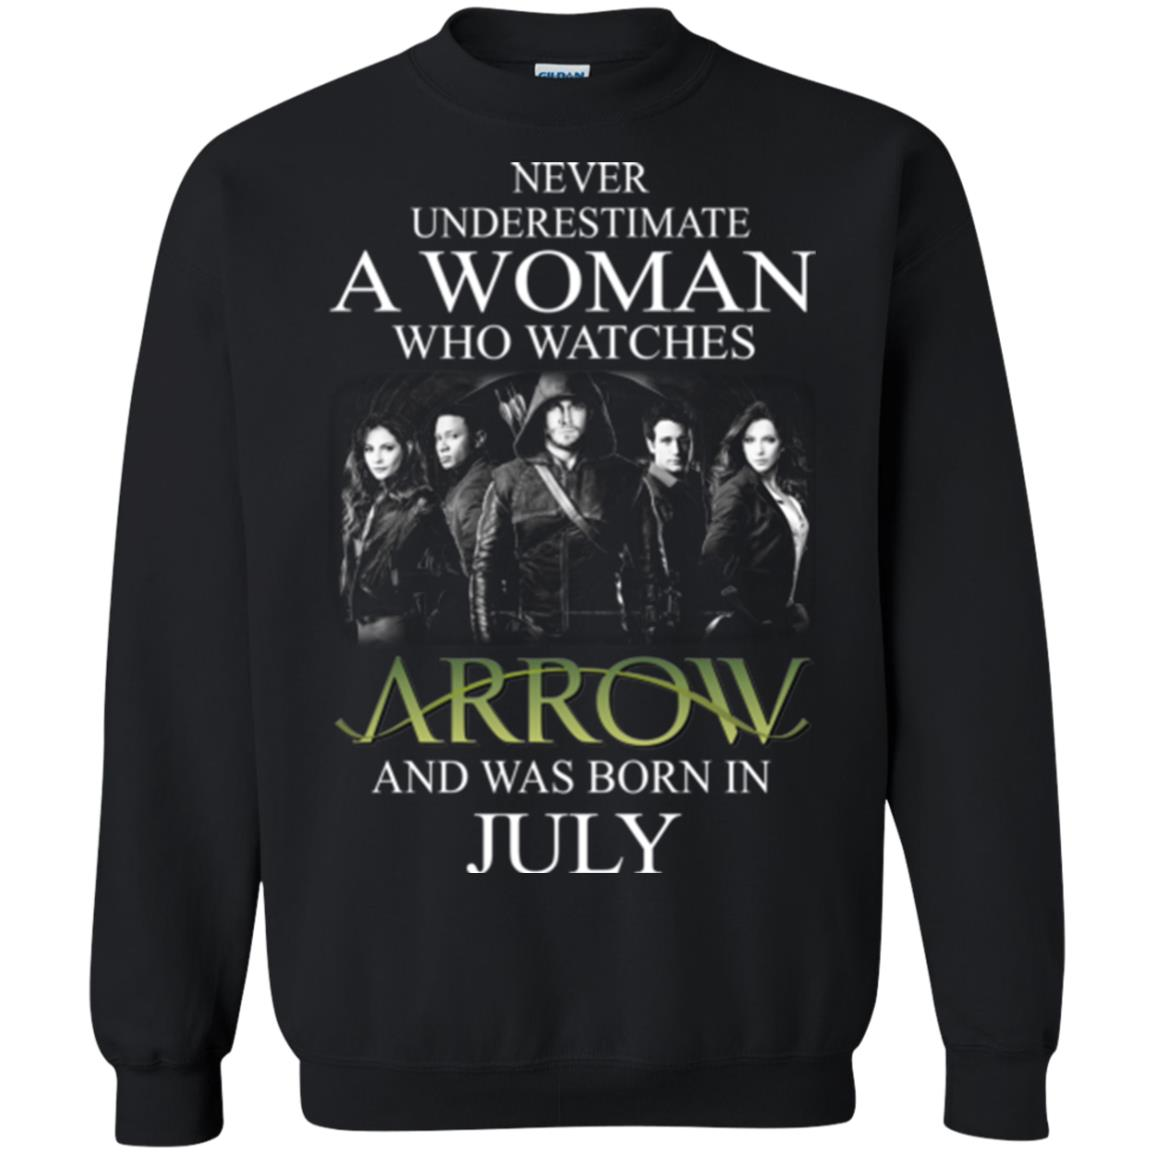 Never Underestimate A woman who watches Arrow and was born in July shirt - image 1524